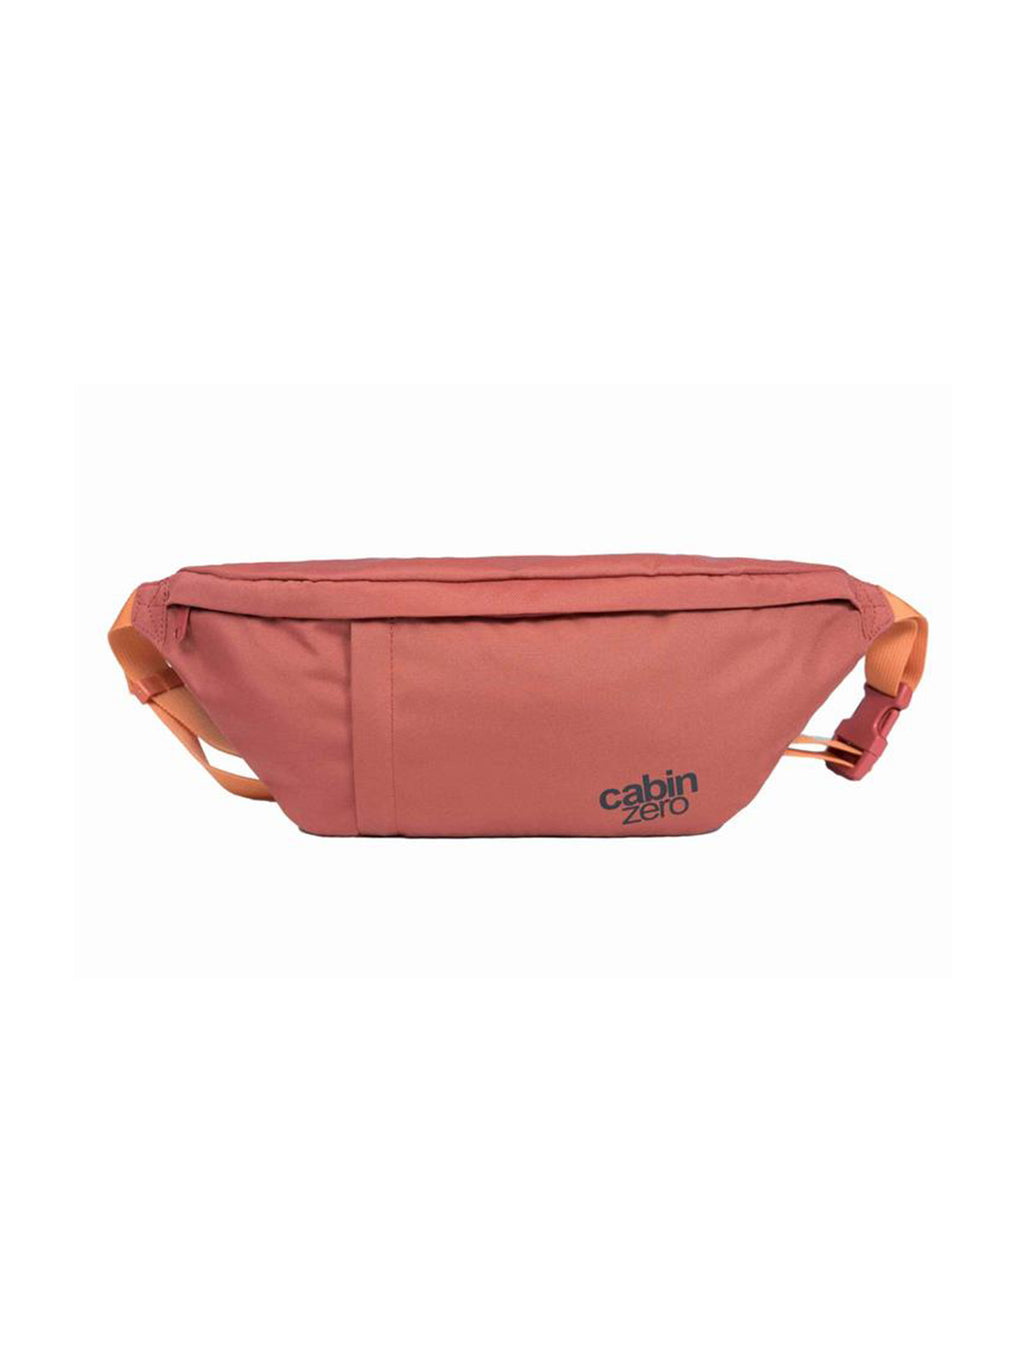 Cabinzero Hip Pack 2L in Serengeti Sunrise Color